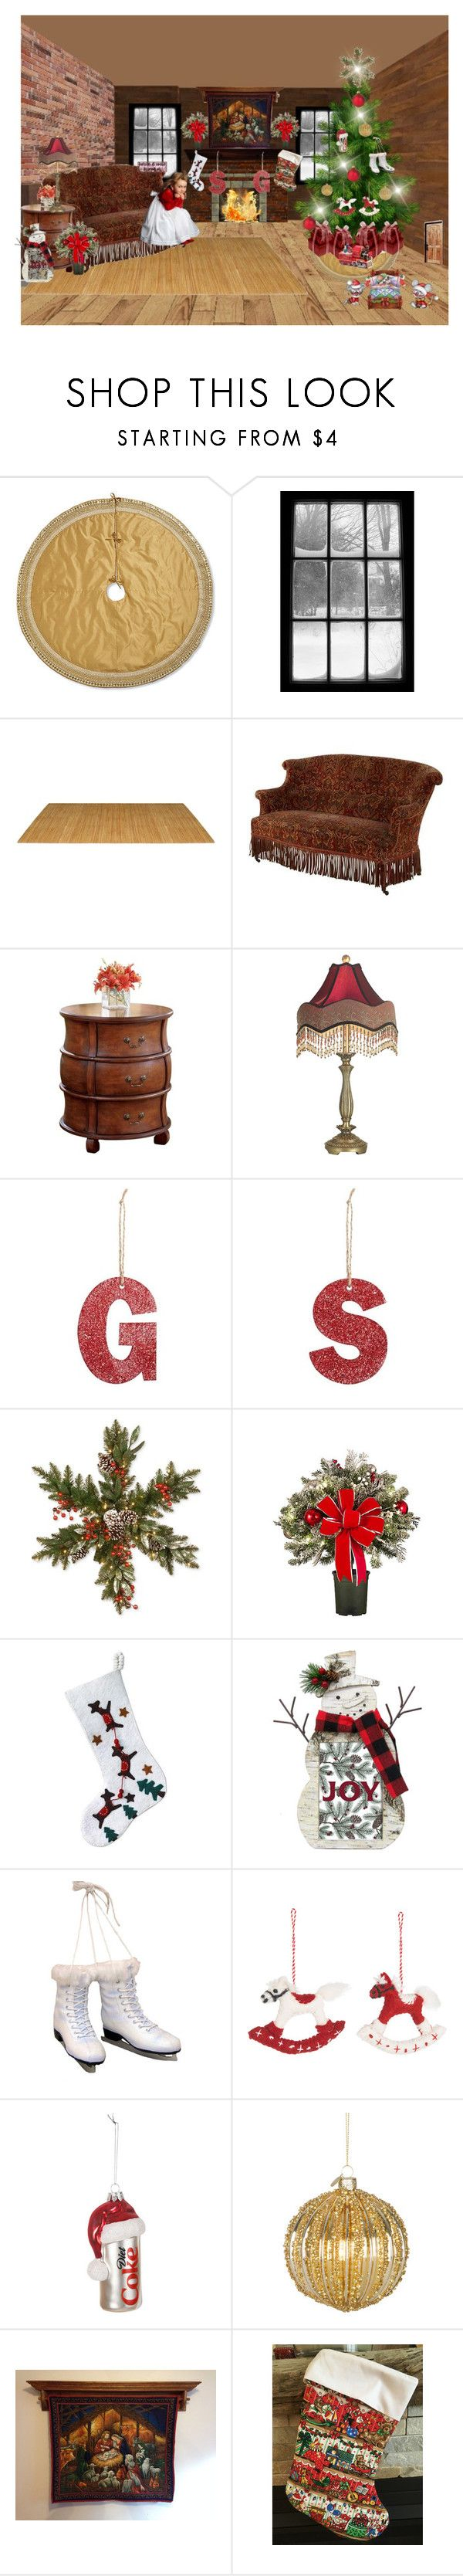 """""""Nativity Wall Hanging"""" by bamasbabes ❤ liked on Polyvore featuring Frontgate, Butler Specialty Company, Dale Tiffany, Pottery Barn, National Tree Company, Improvements, NOVICA, St. Nicholas Square, Kurt Adler and Amica"""